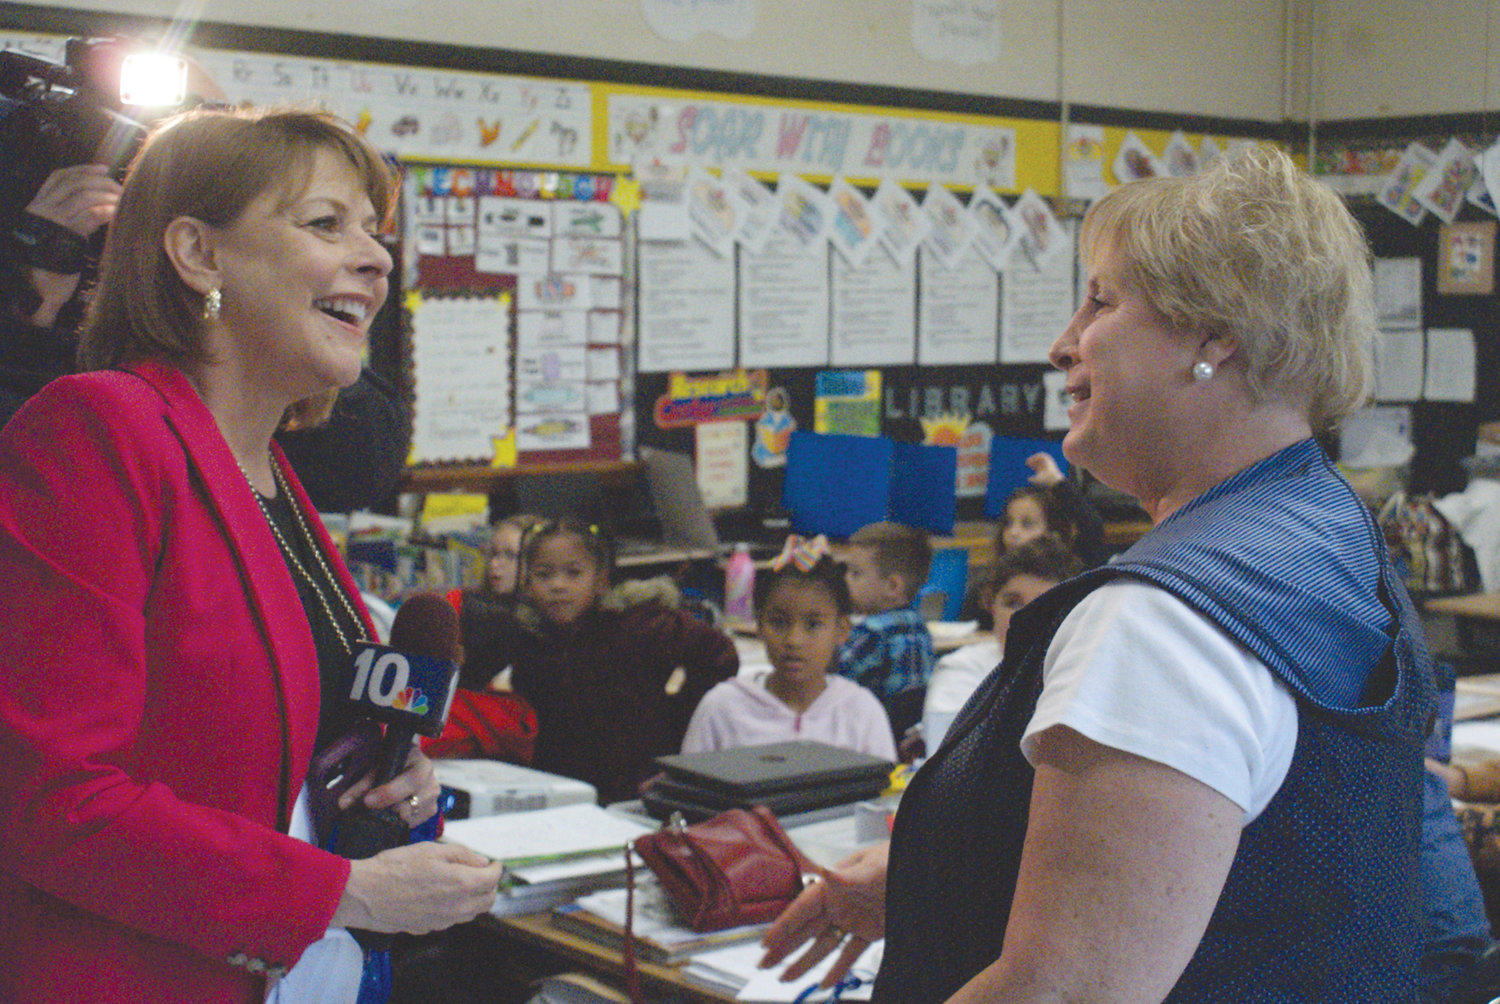 A BIG SURPRISE: WJAR's Patrice Wood surprised Judy Maurano with the Golden Apple Award on Oct. 11. The segment will be aired on NBC10 on Oct. 24 during the 6 p.m. newscast.